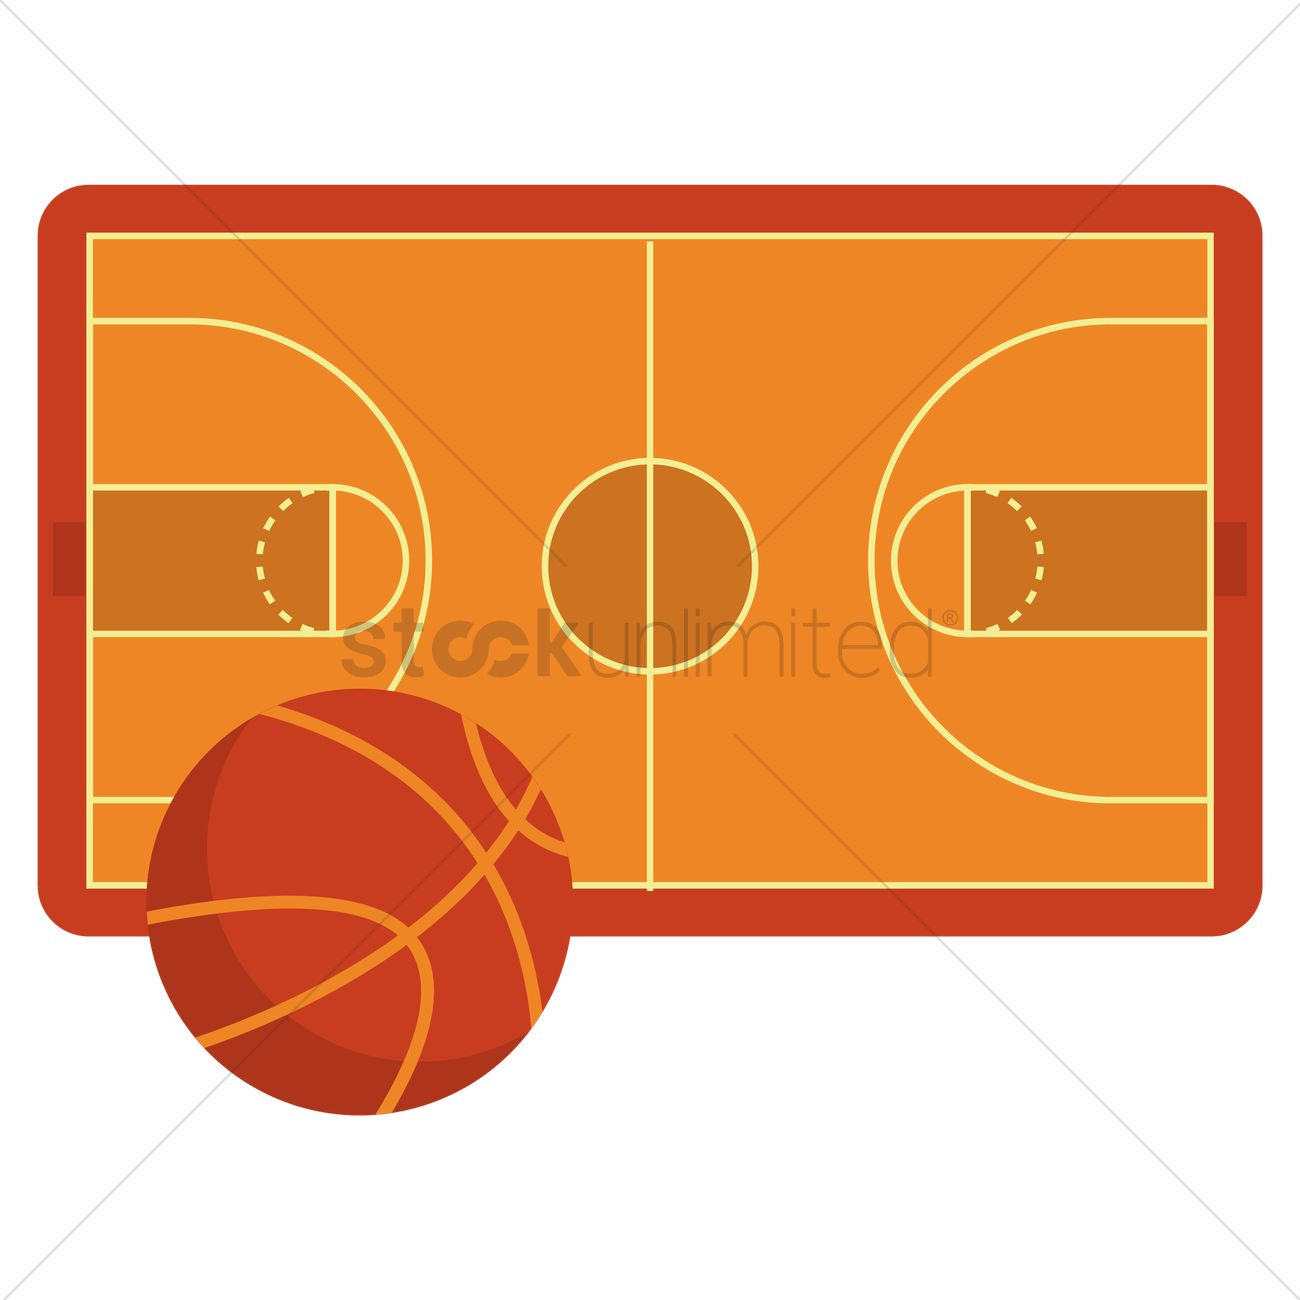 basketball court vector image 1316031 stockunlimited rh stockunlimited com basketball court vector drawing basketball court vector image